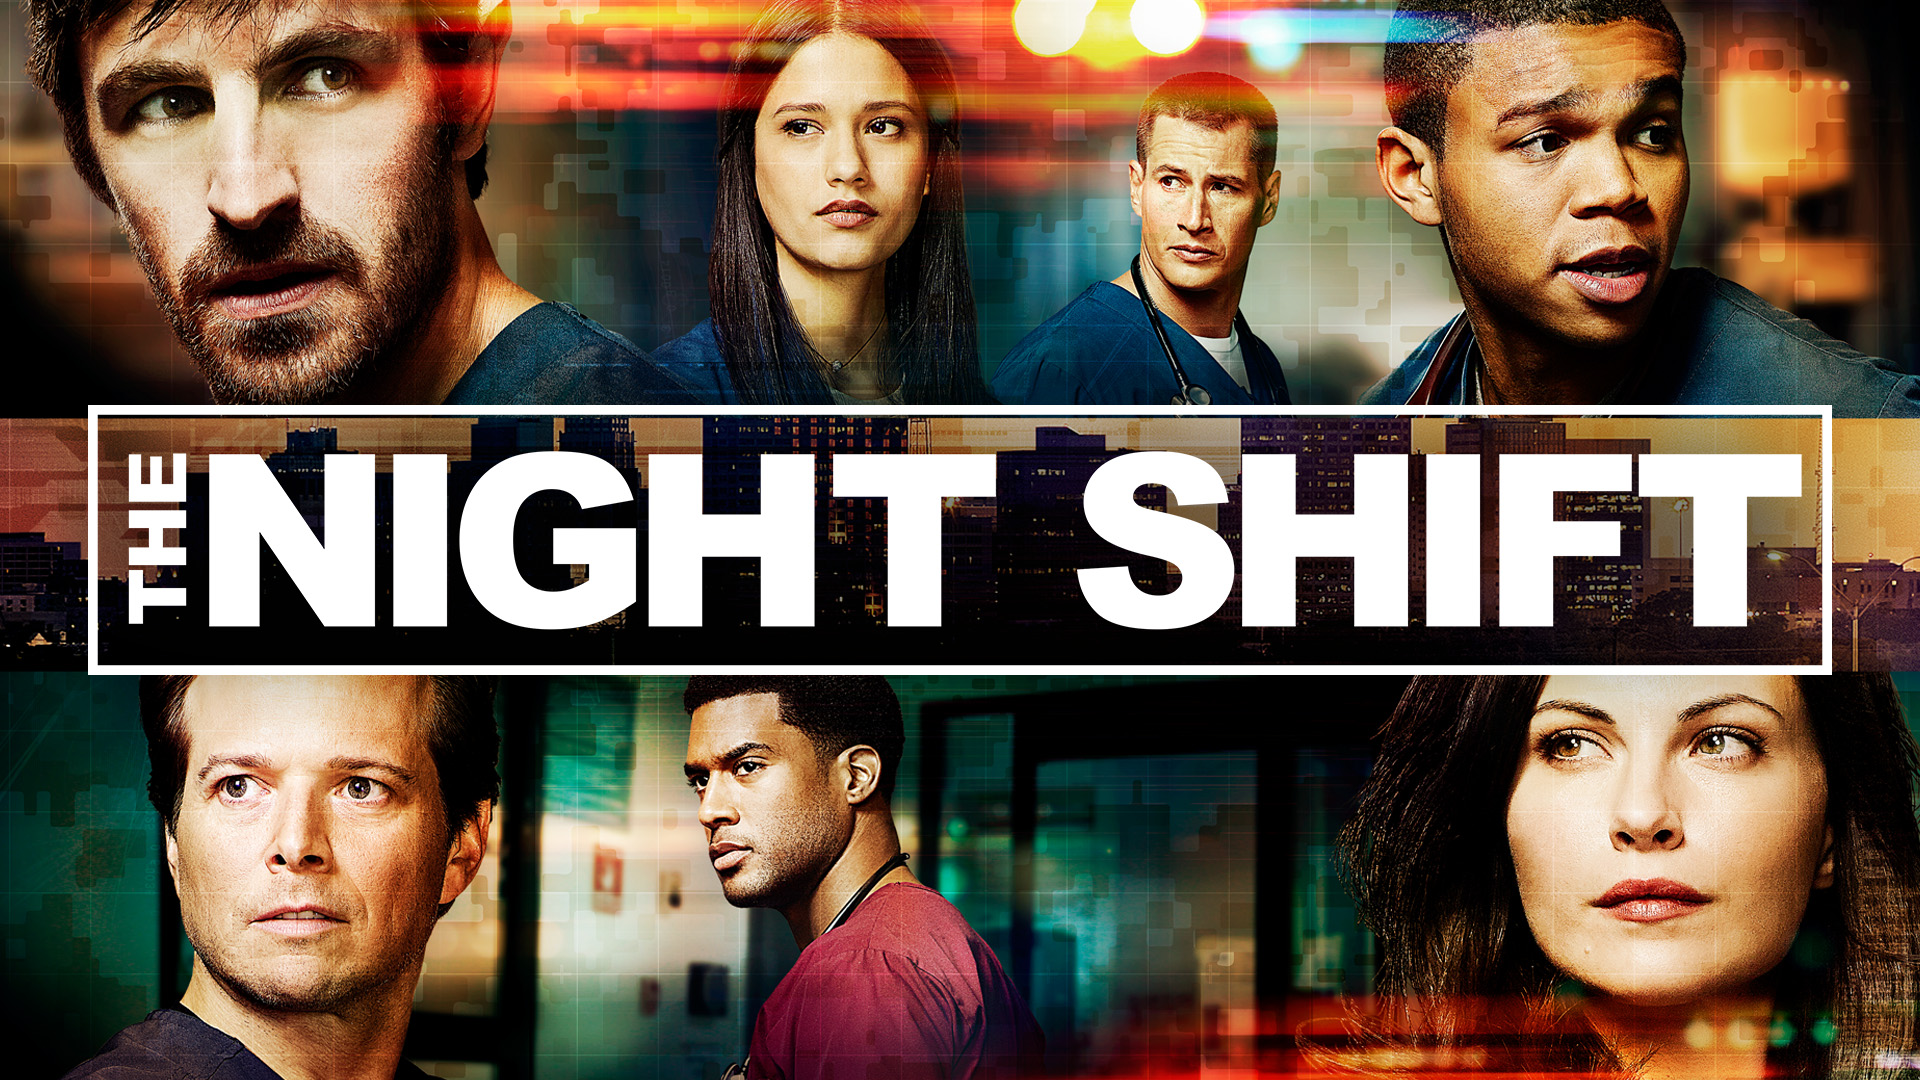 Watch The Night Shift Episodes at NBC.com